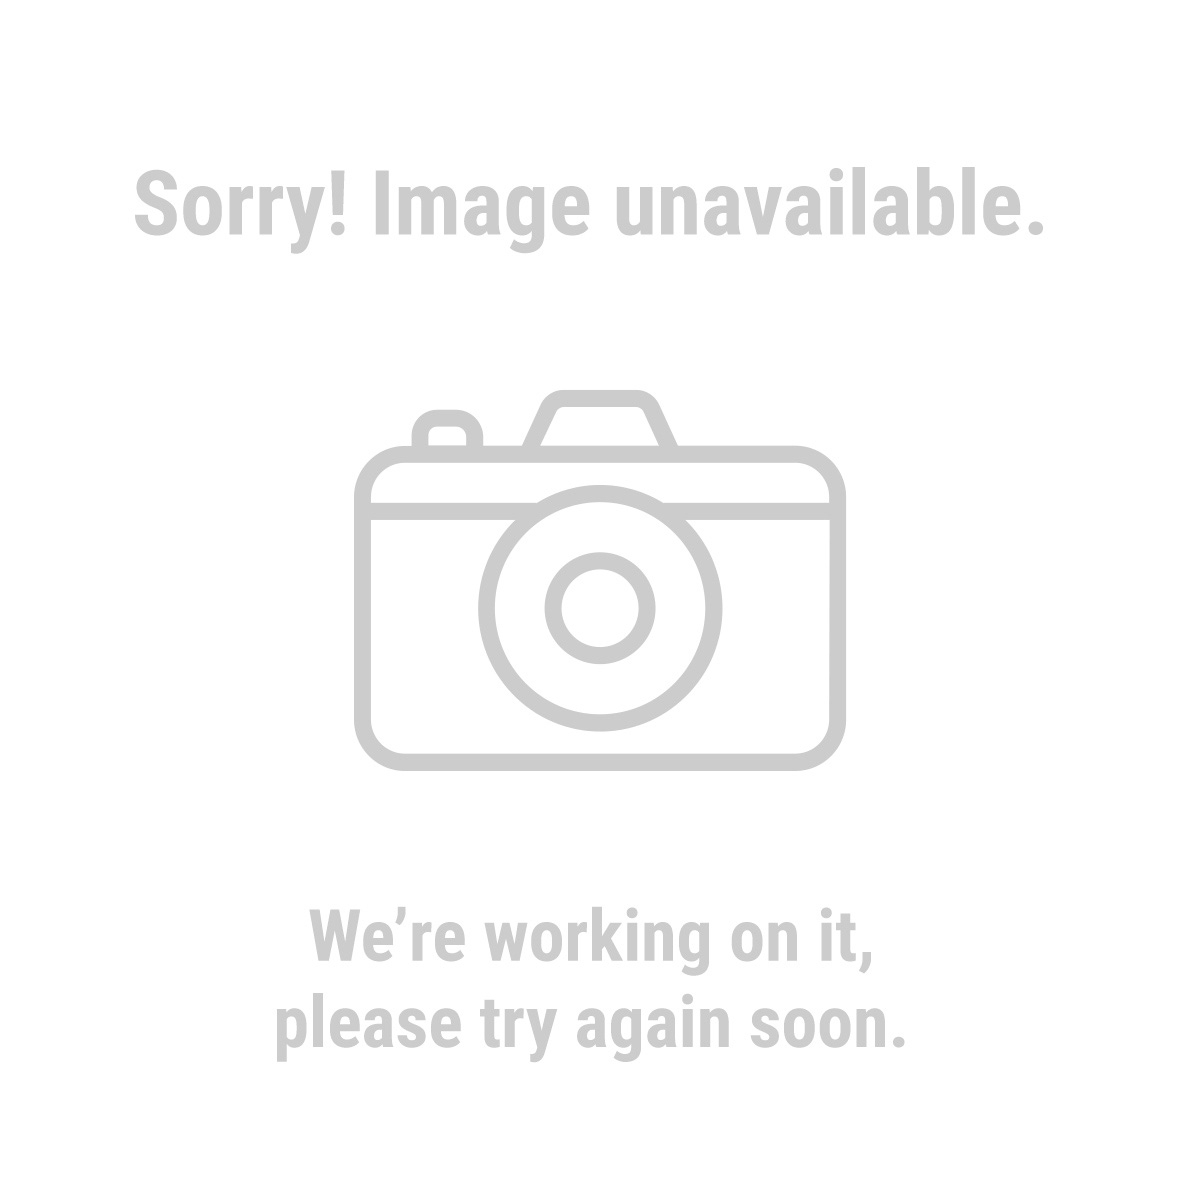 Warrior® 41312 4 Piece Large Diameter Spade Bit Set